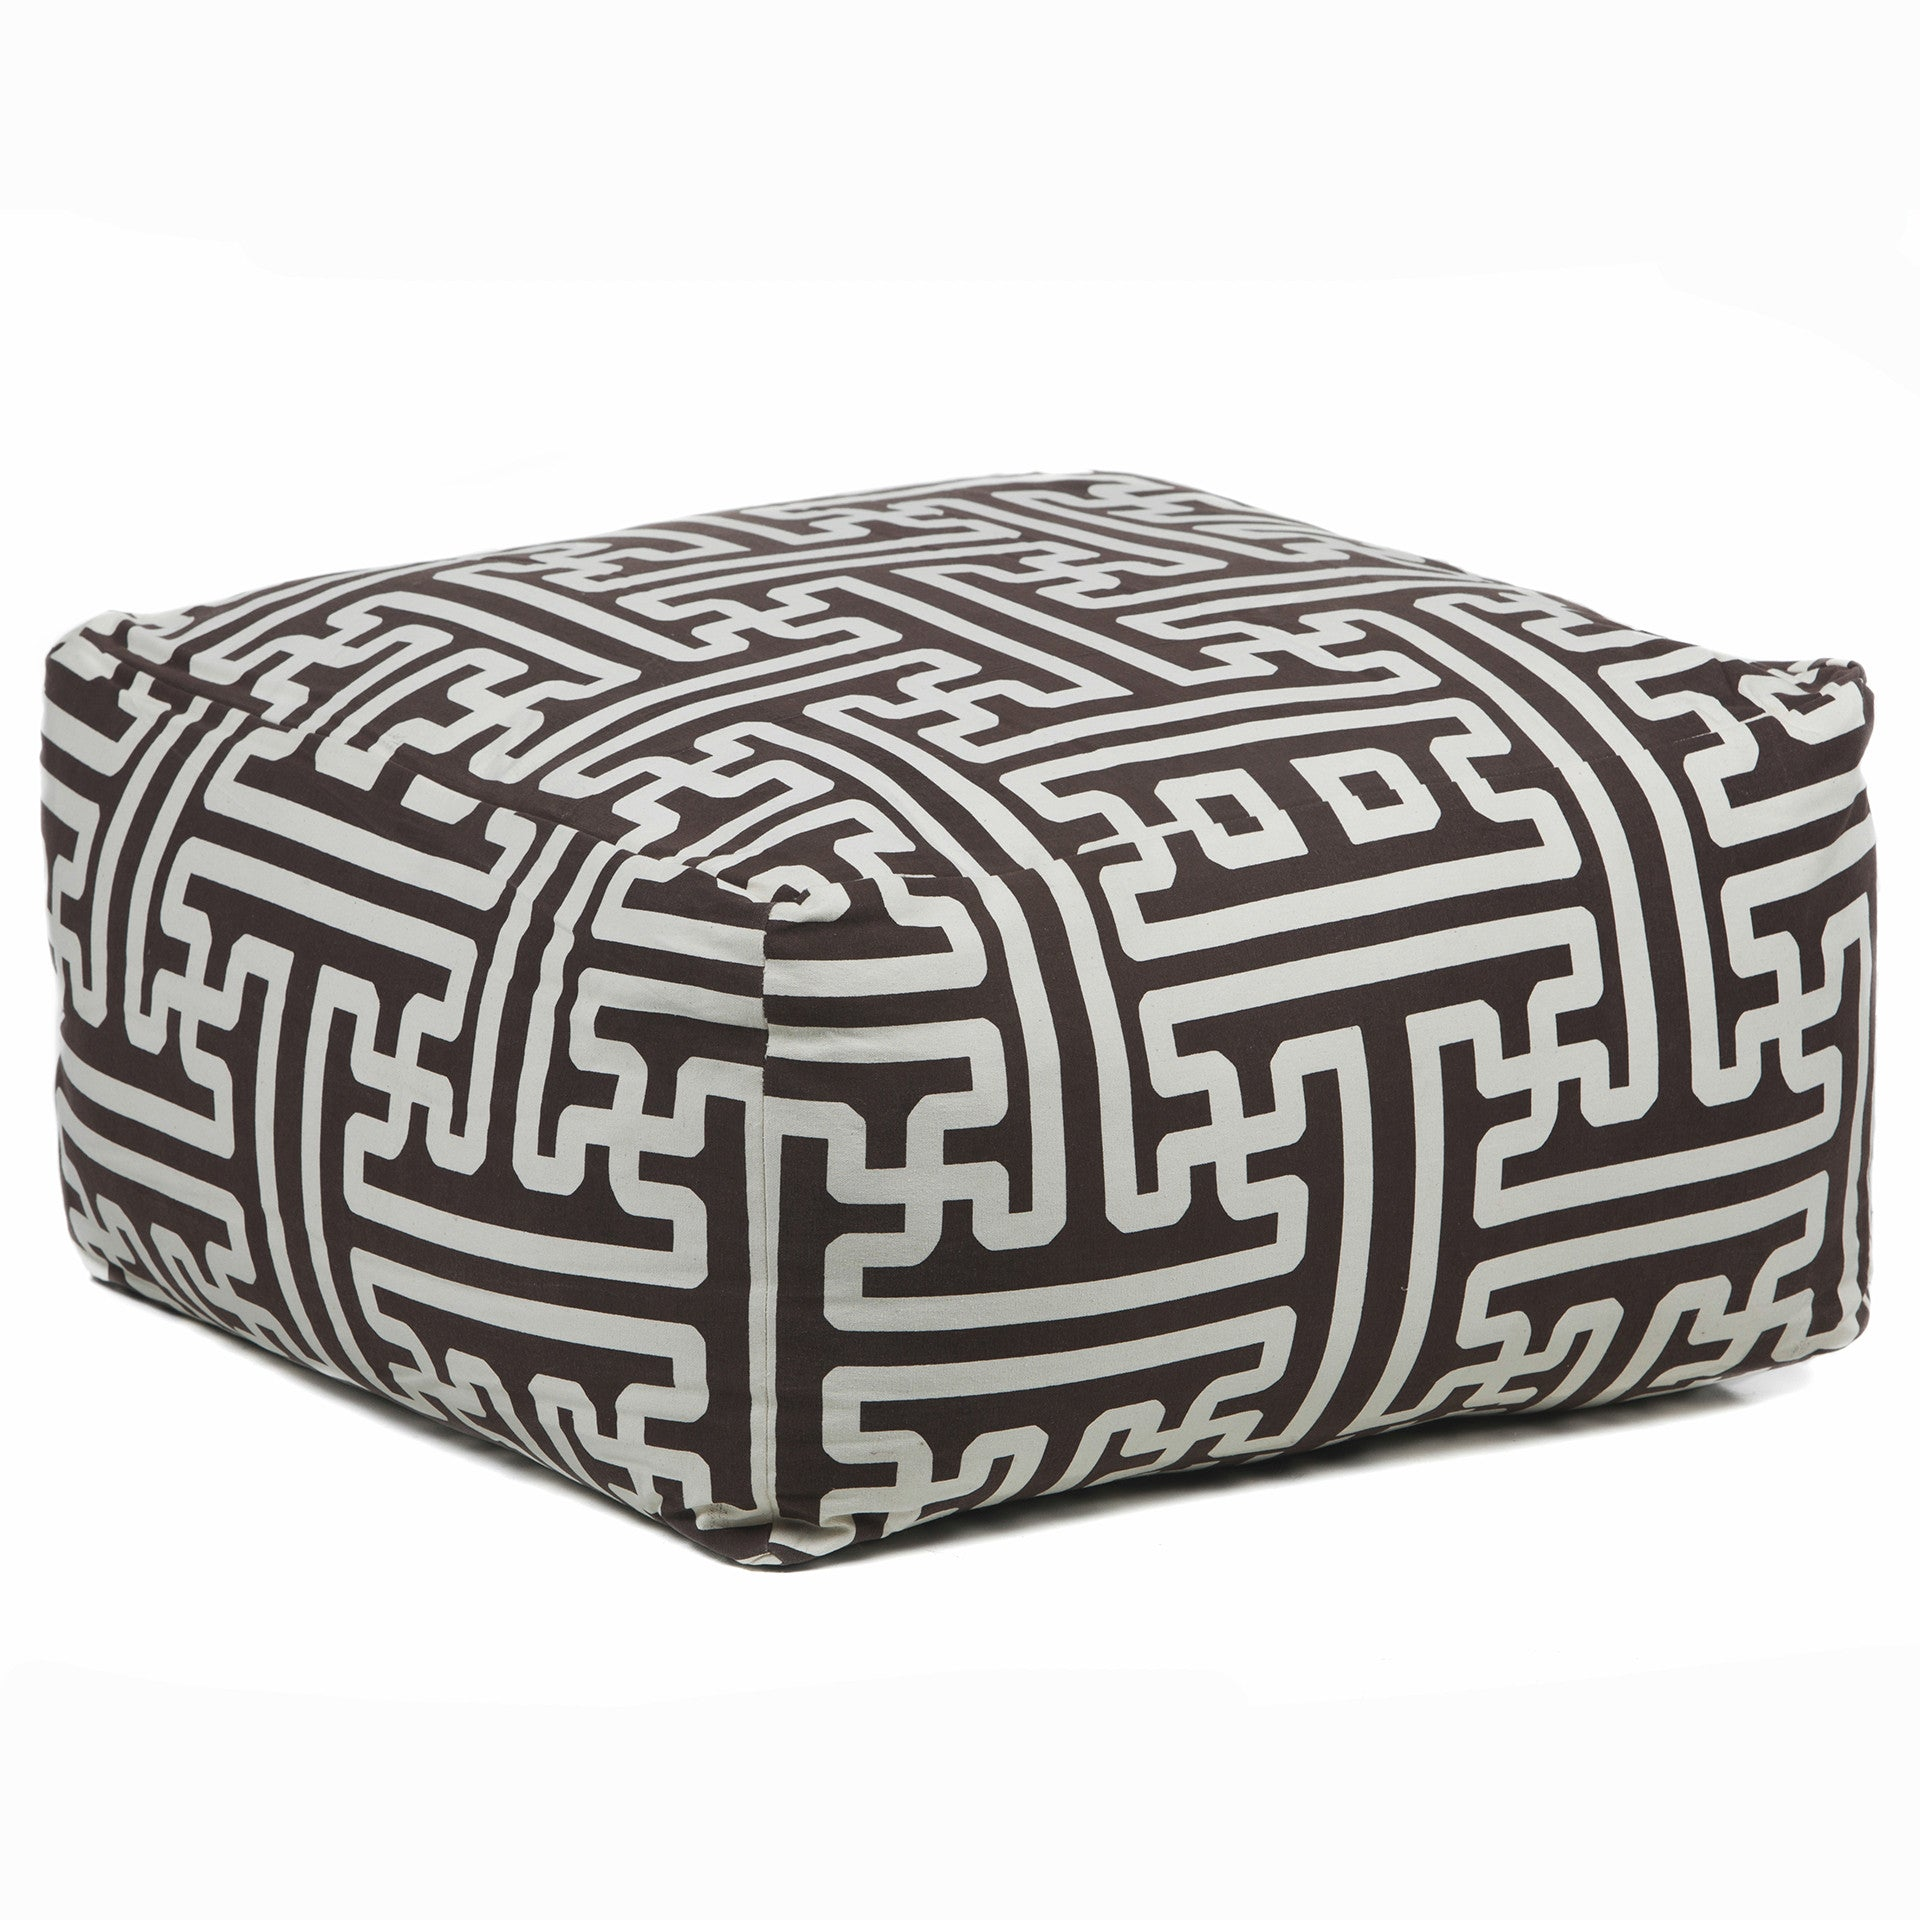 Pouf in Brown & Cream design by Chandra rugs